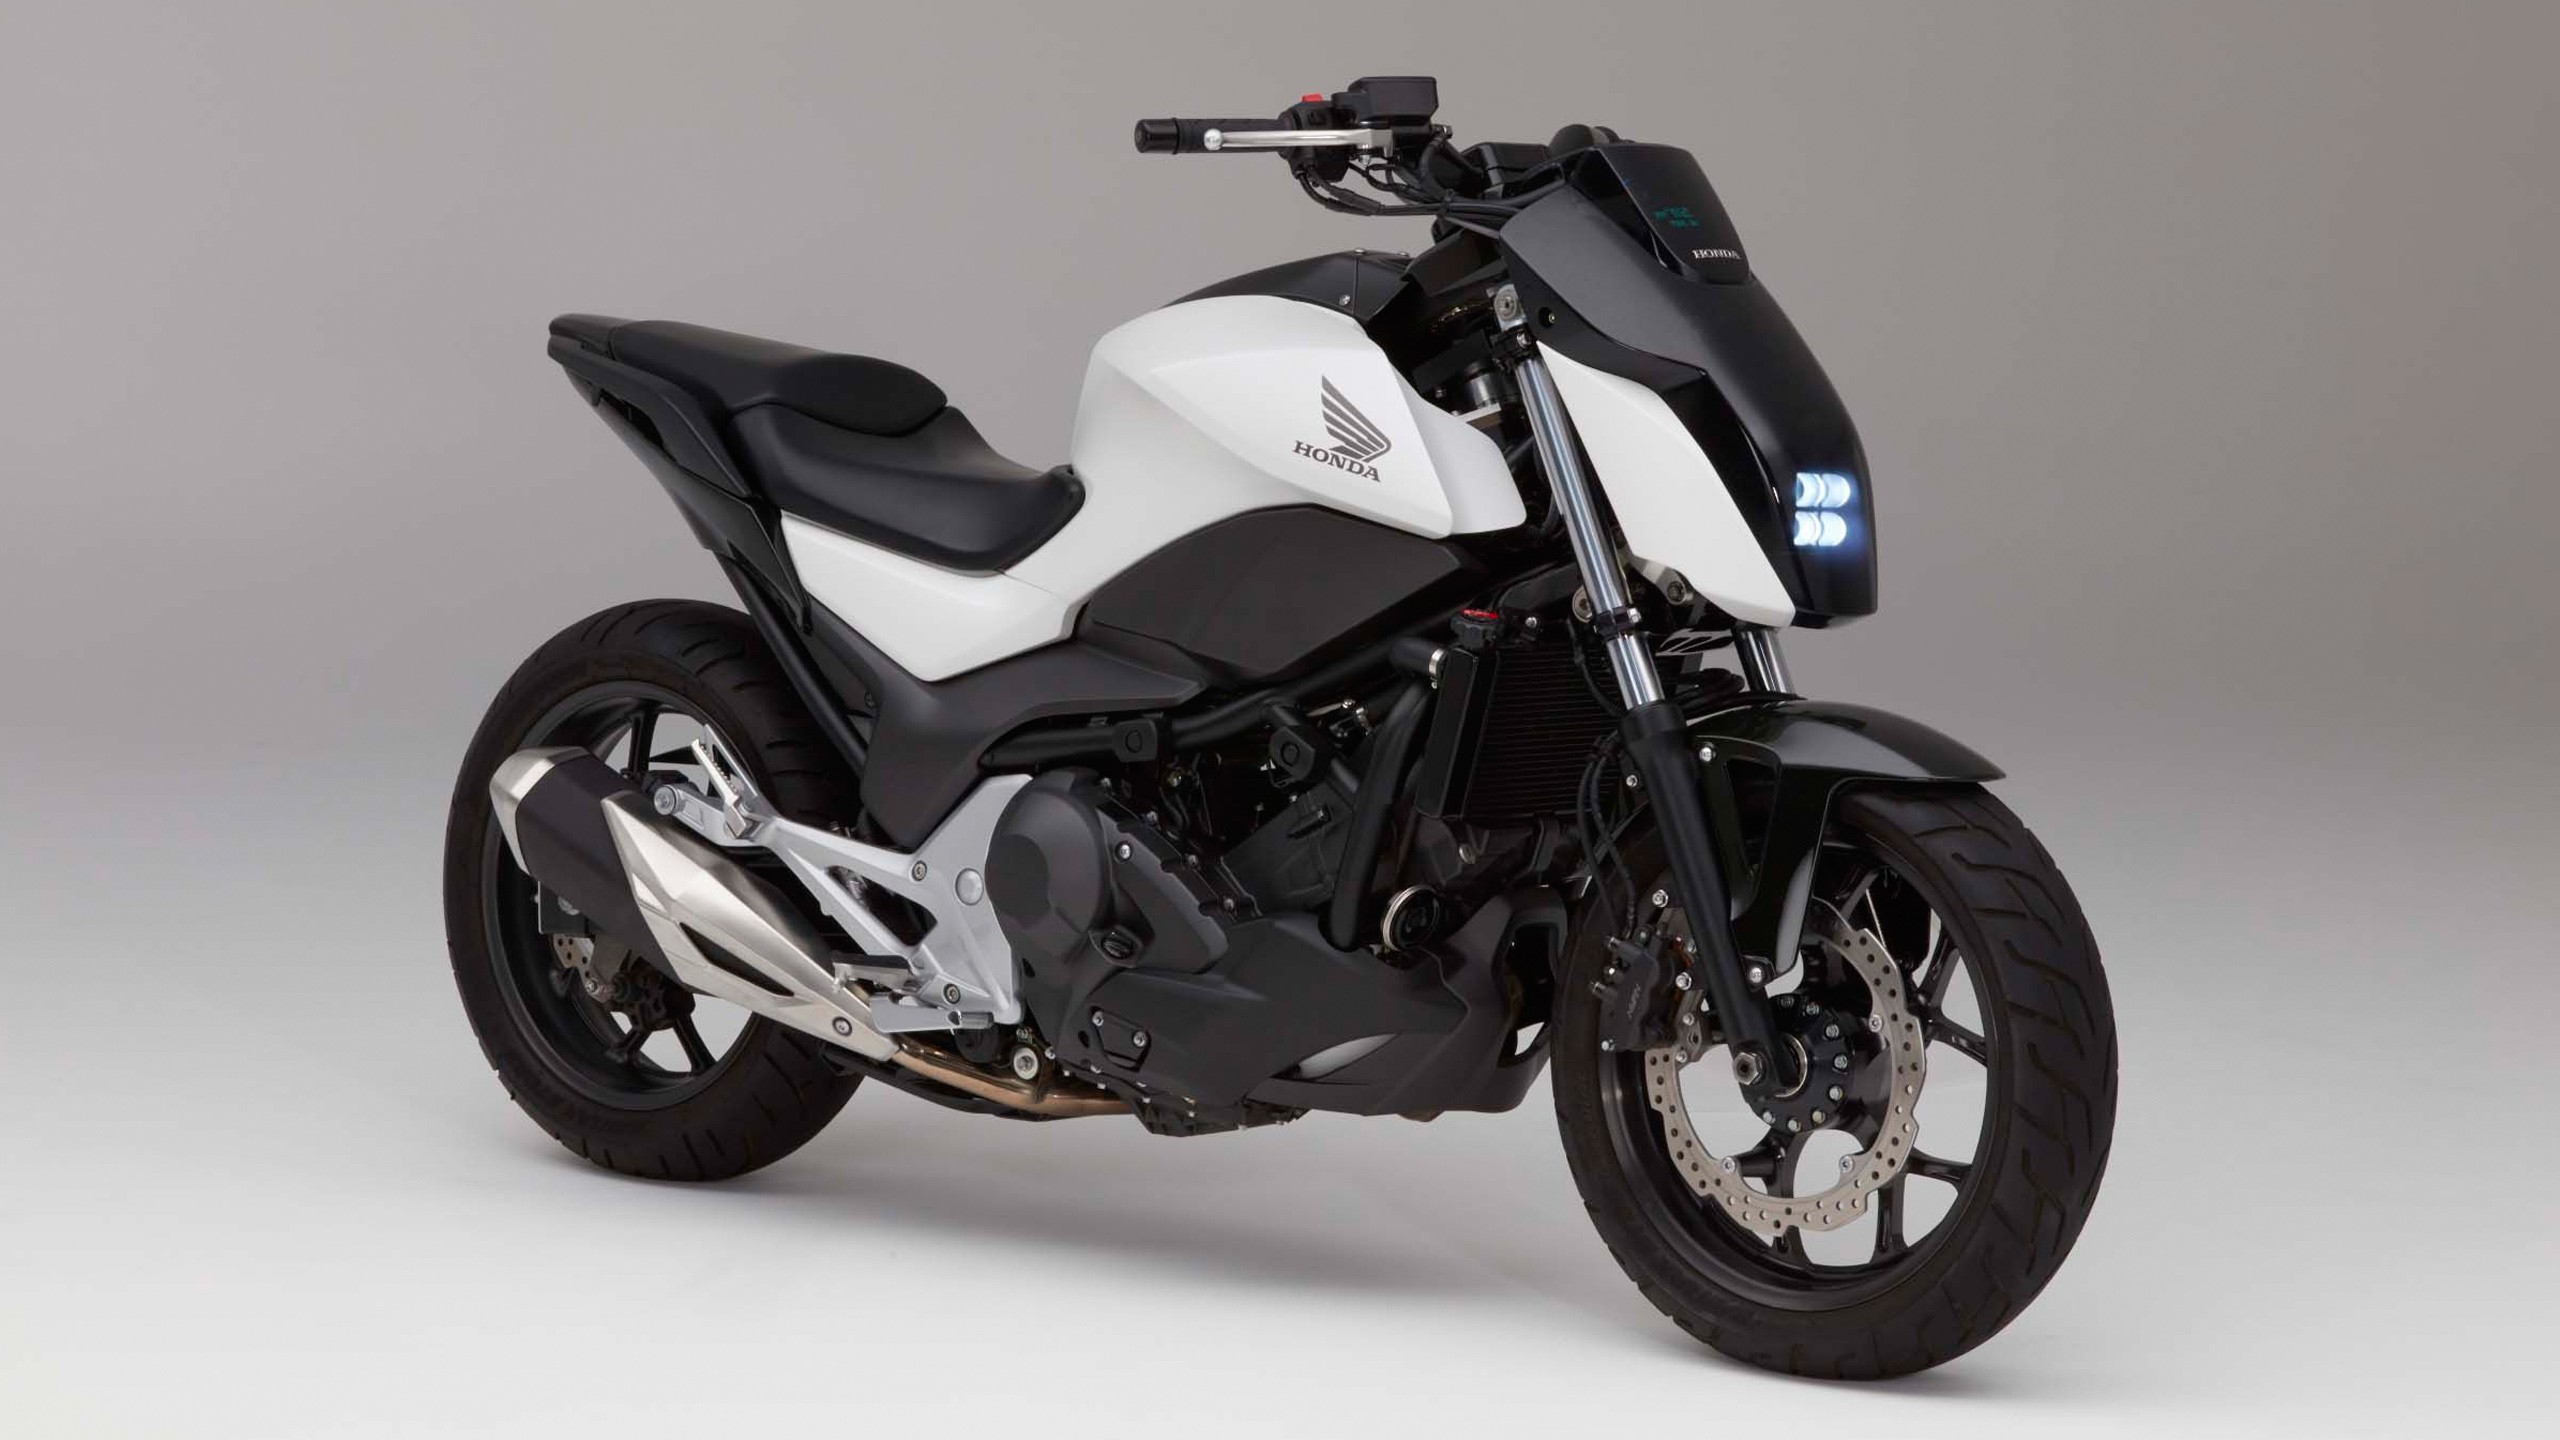 honda riding assist bike wallpaper | hd wallpaper background